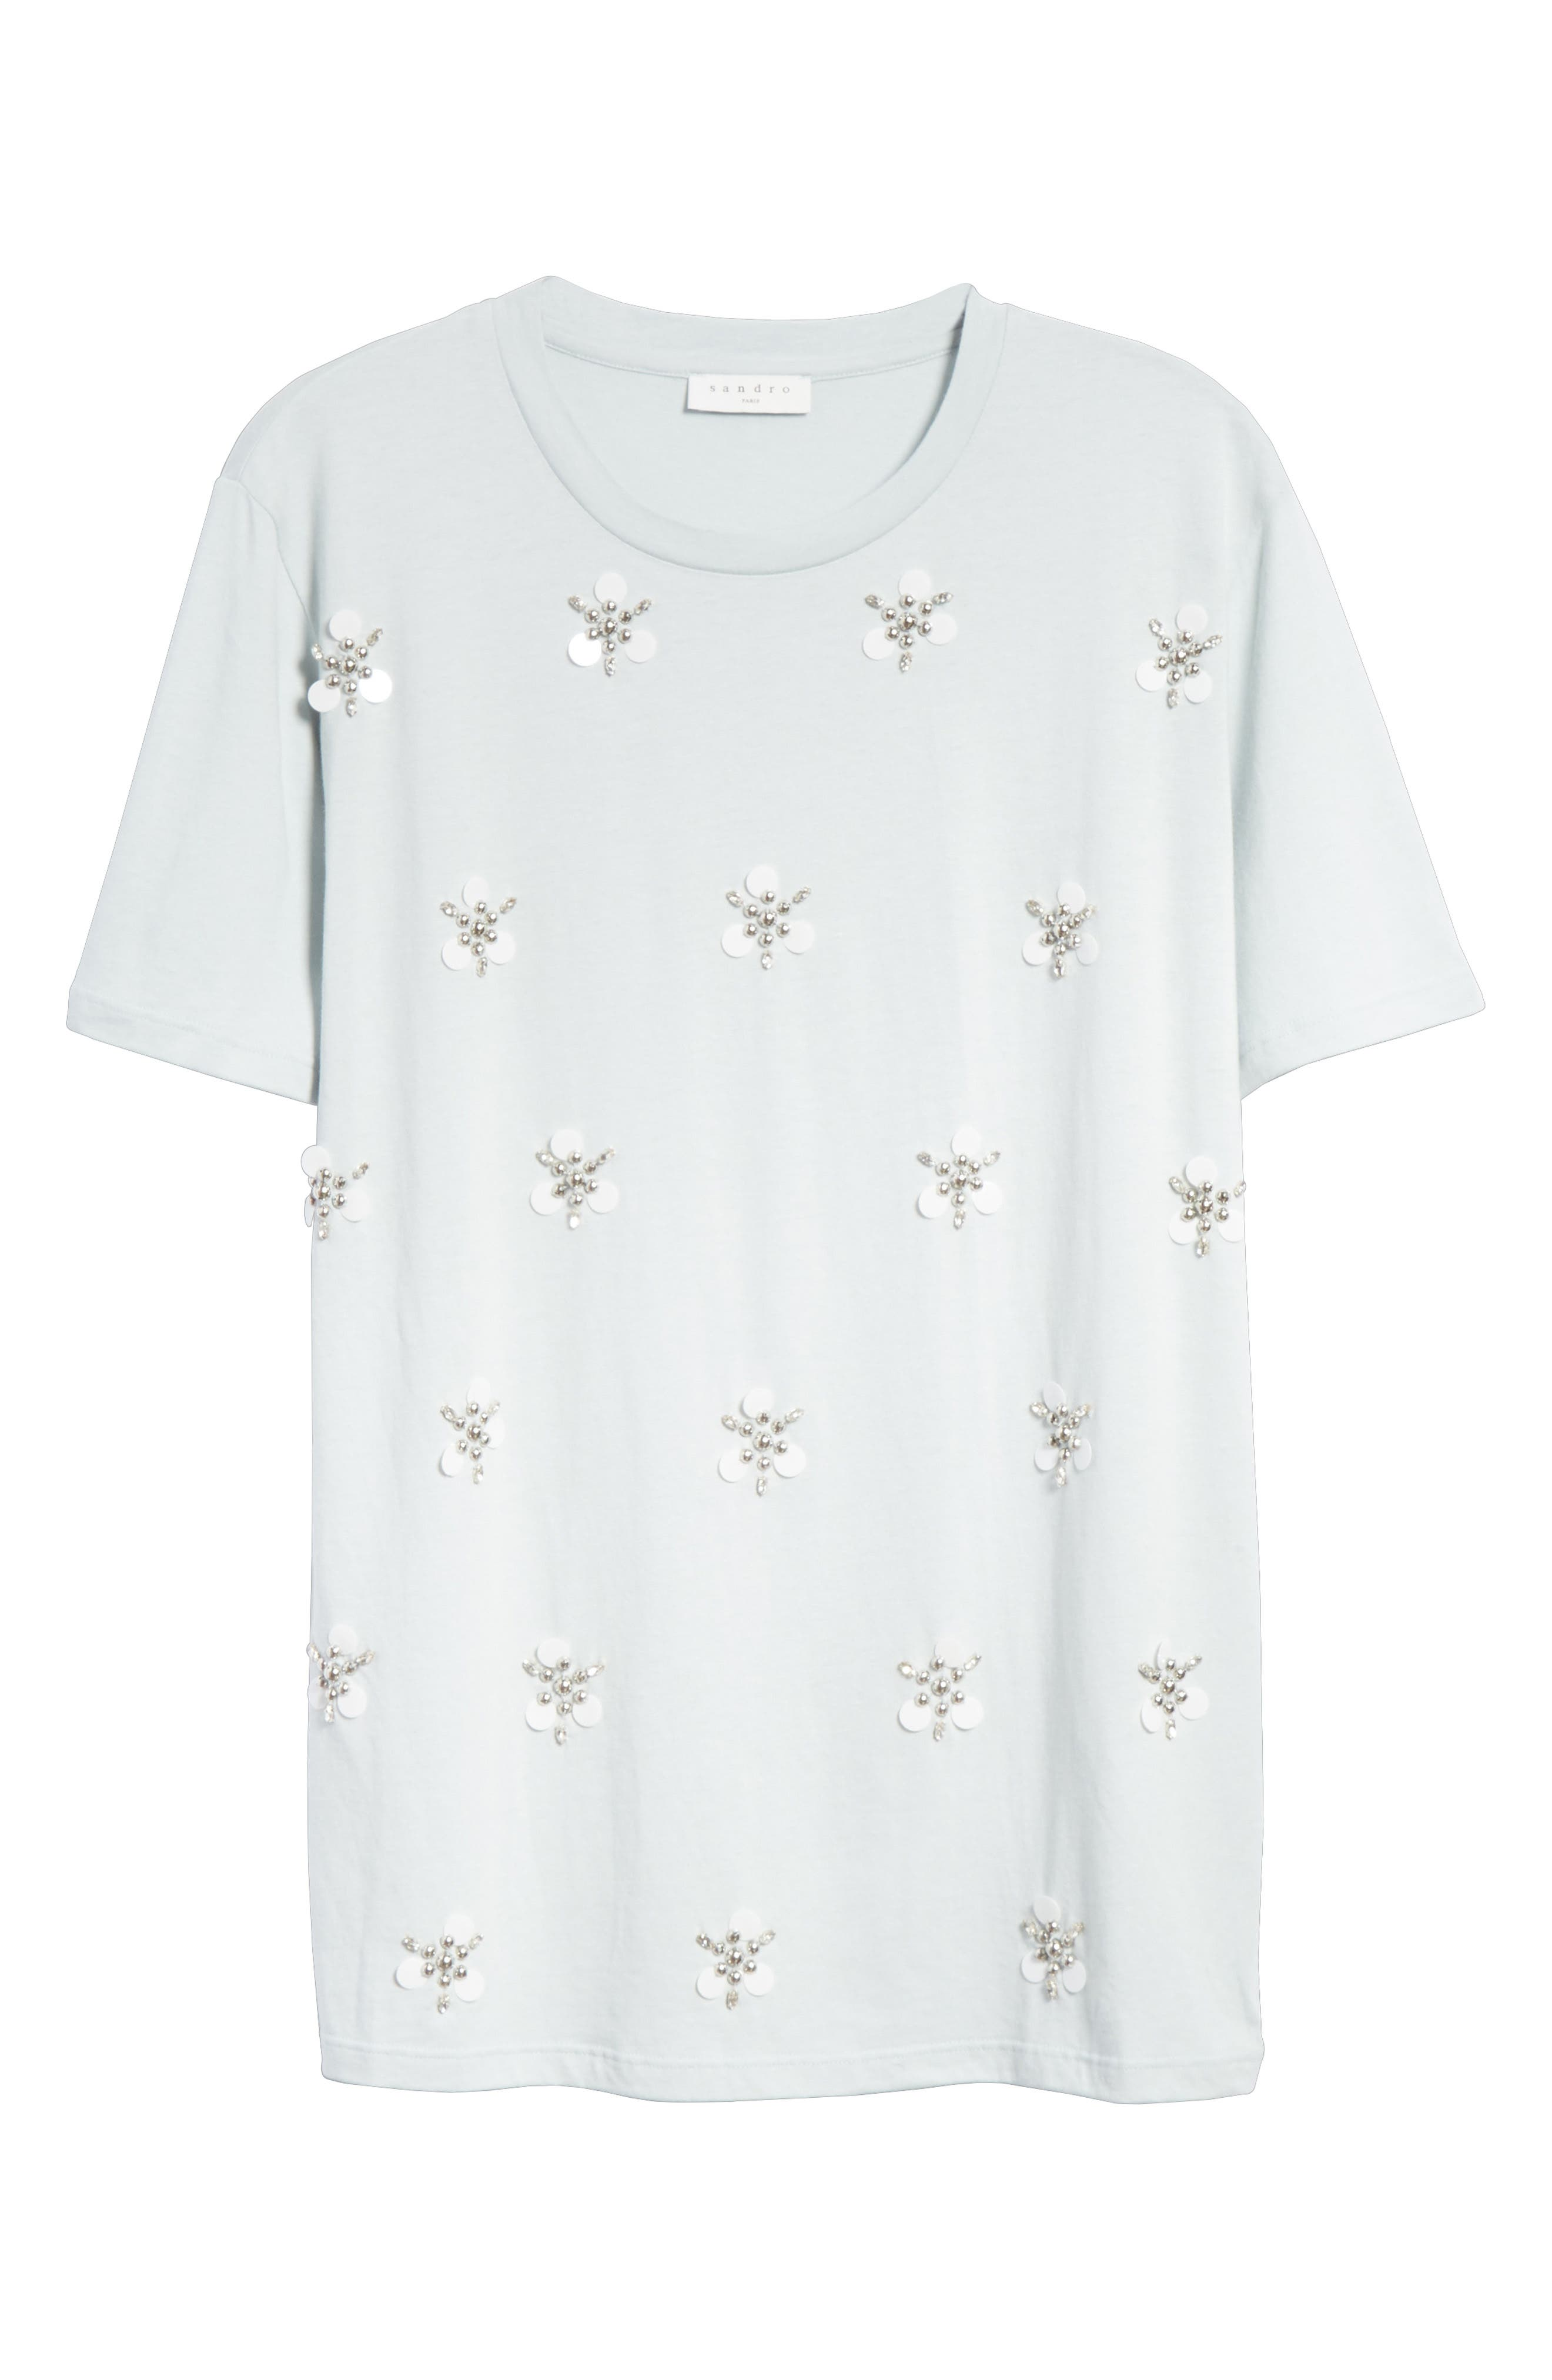 Beaded Blossoms Cotton Blend Tee,                             Alternate thumbnail 6, color,